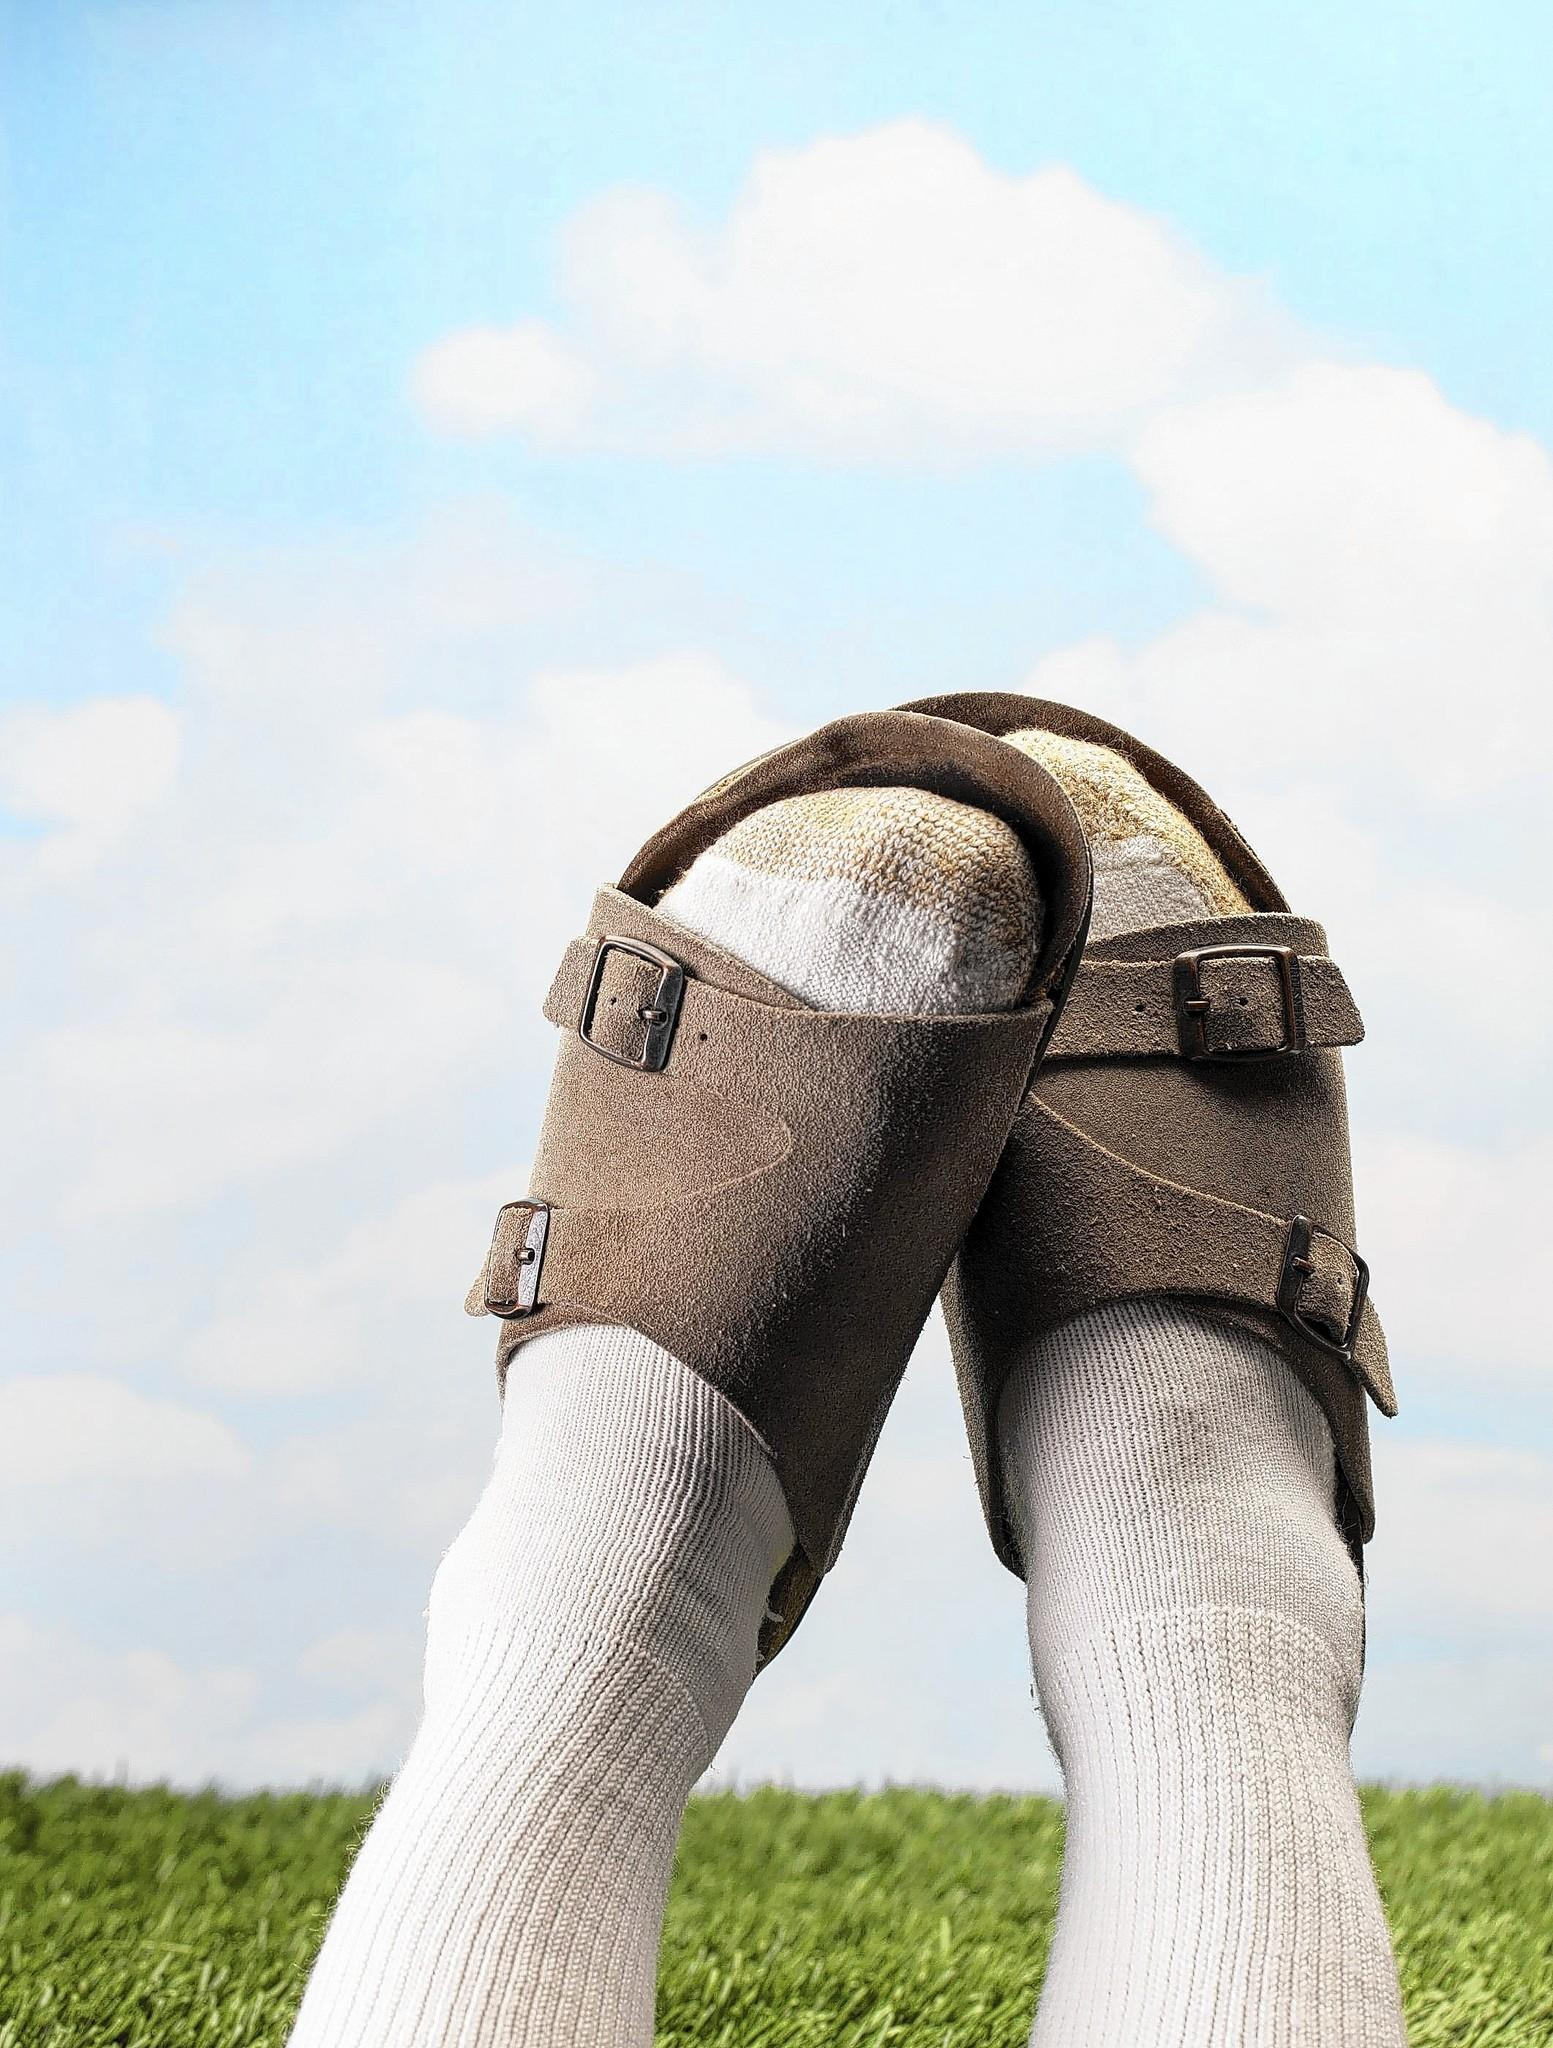 Socks with sandals? Only if you're fashionable.